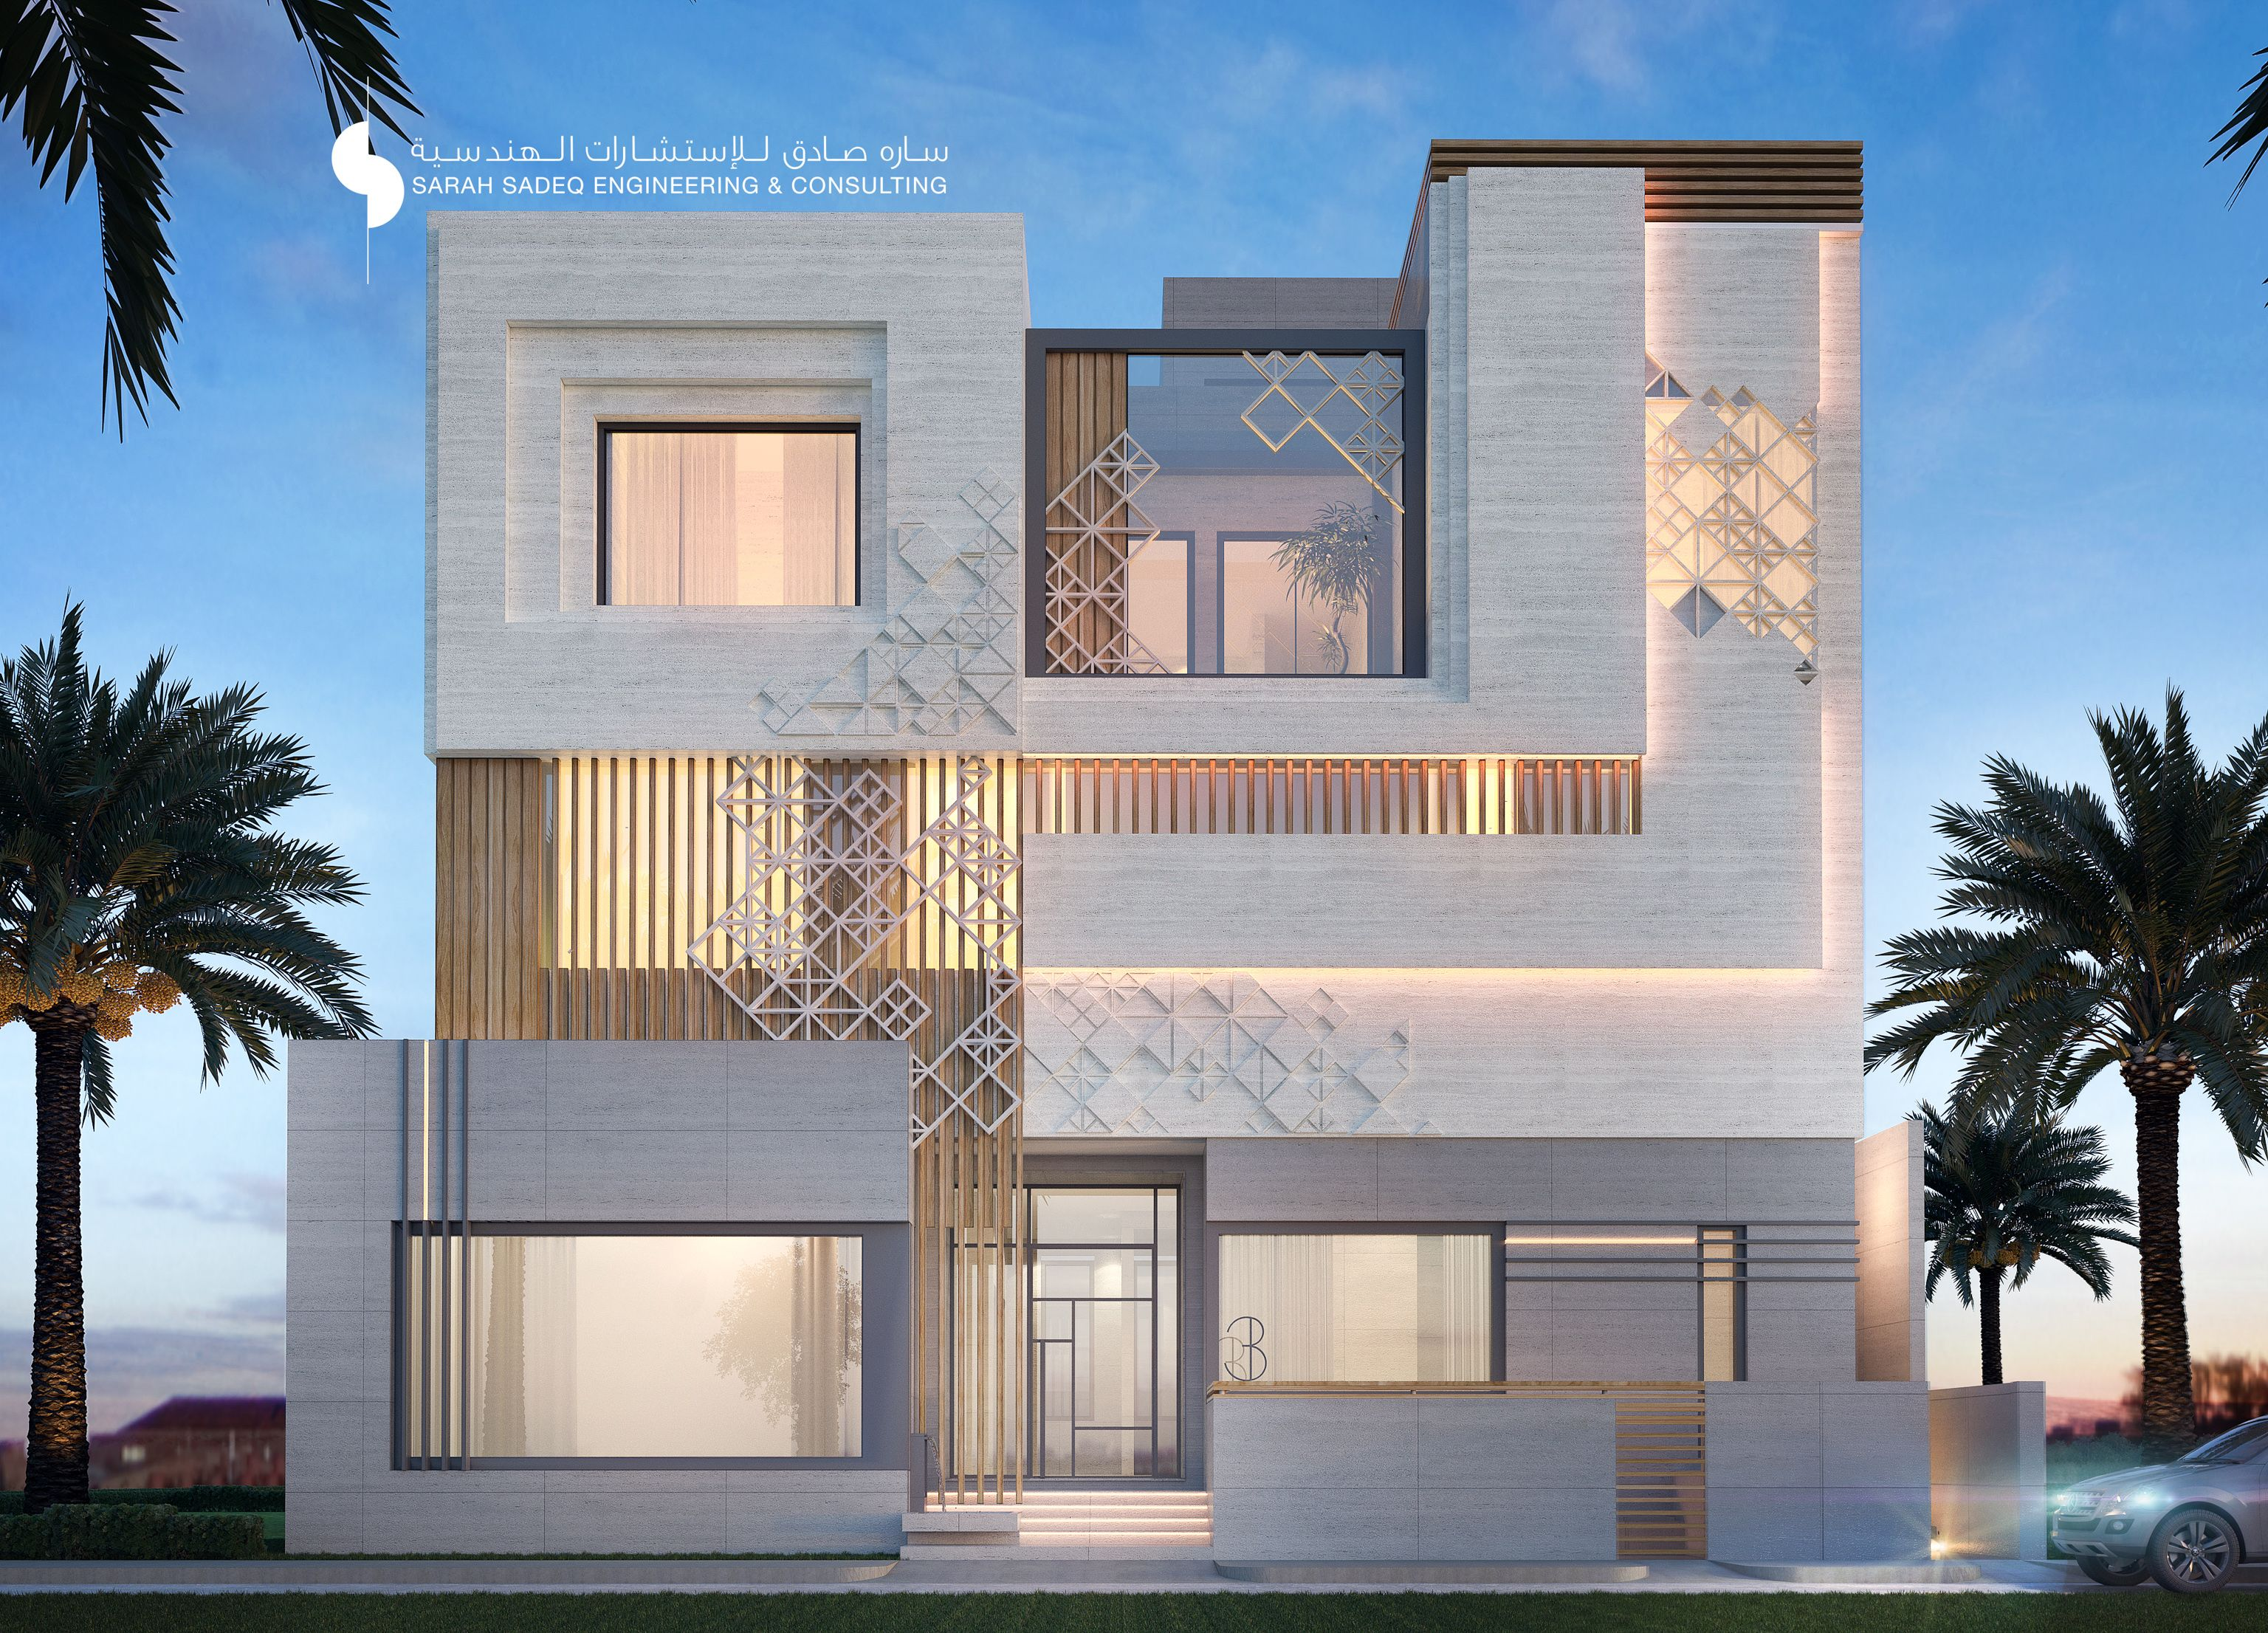 Private villa kuwait 400 m by sarah sadeq architects for Luxury home designers architects